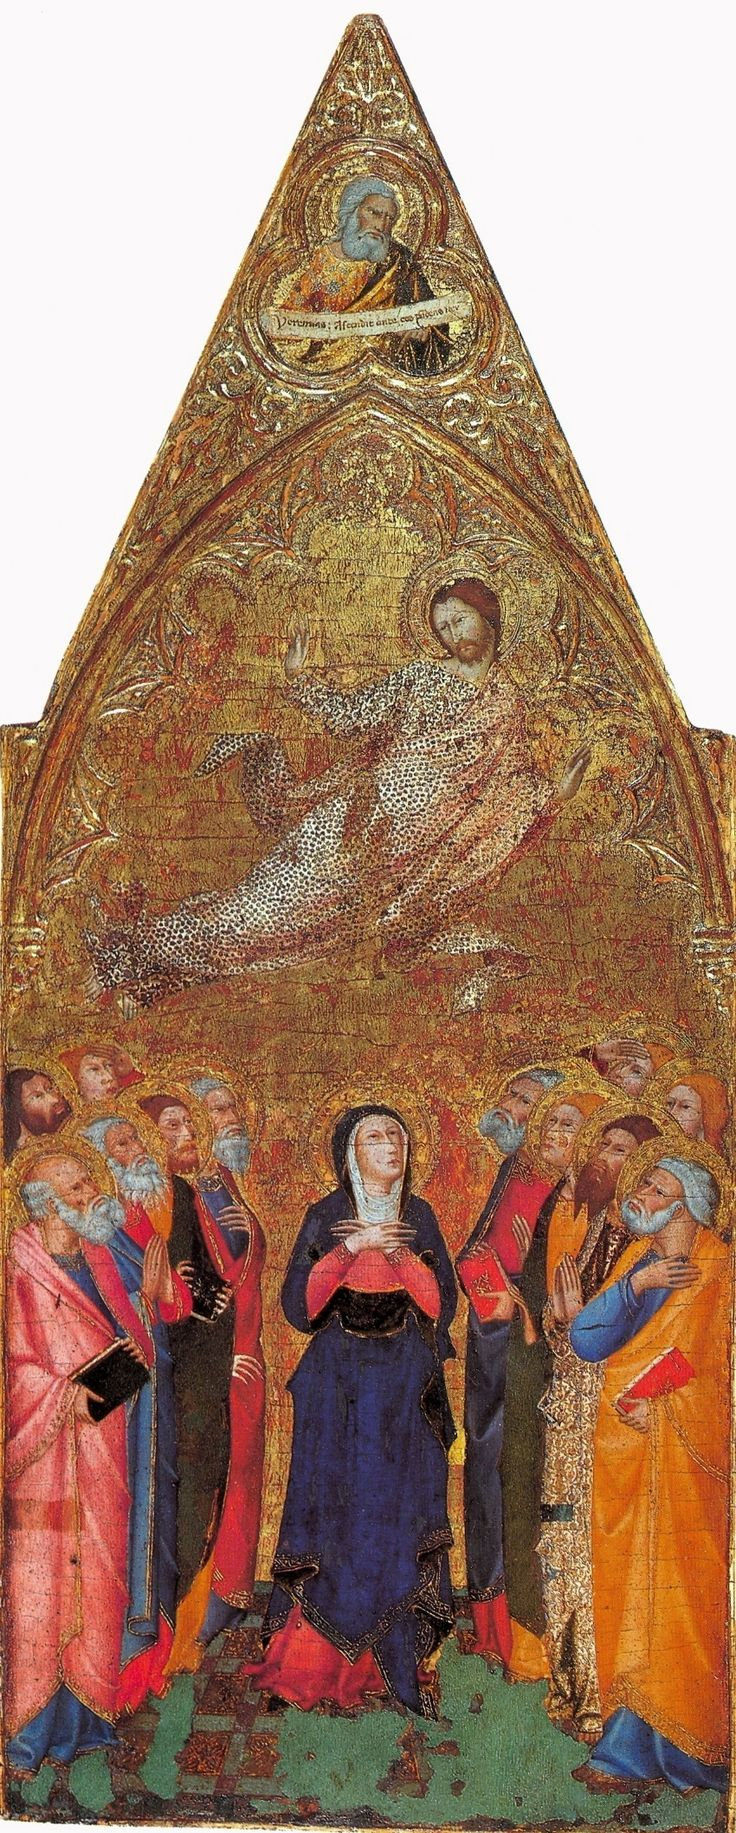 Andrea Vanni - Ascensione di Cristo - 1355-60 - Tempera su legno - The Hermitage, St. Petersburg